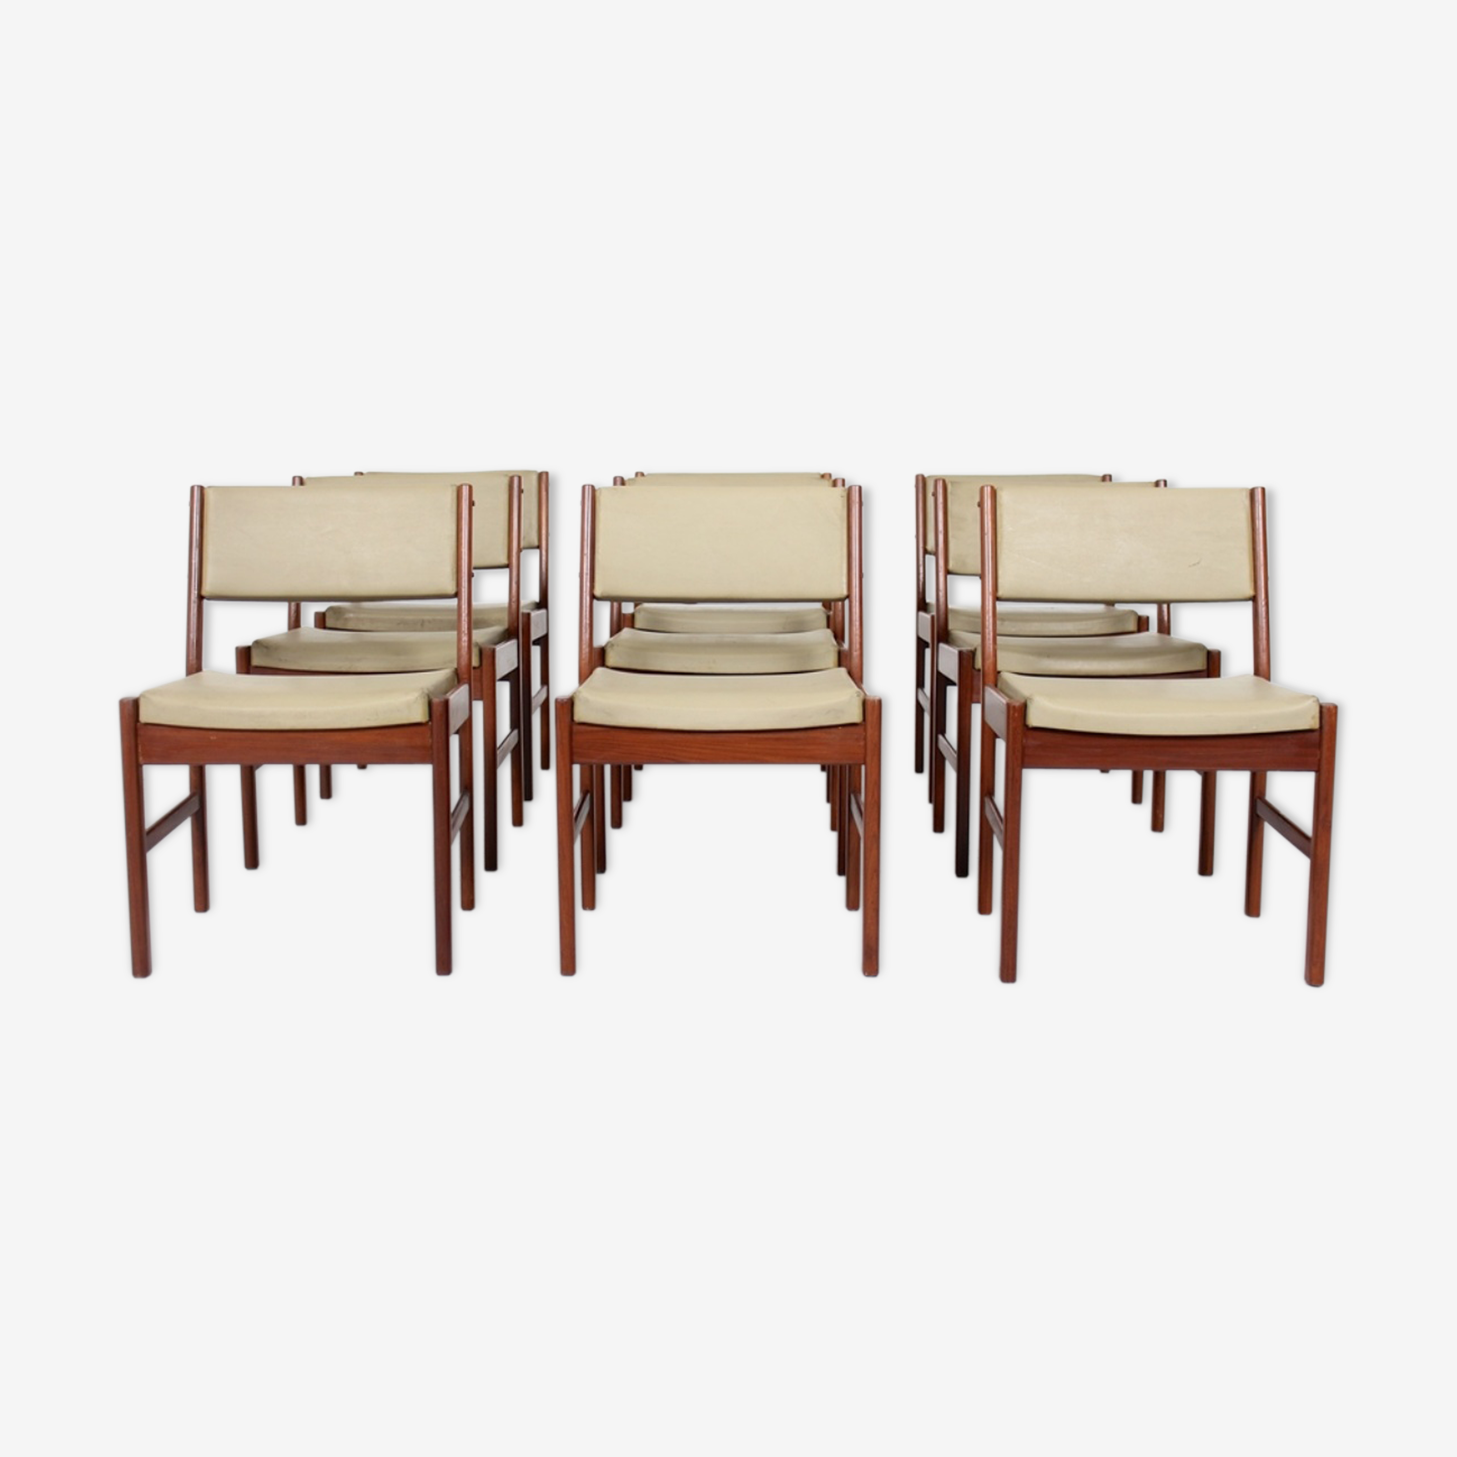 Vintage teak lounge chairs, Denmark, by MCM